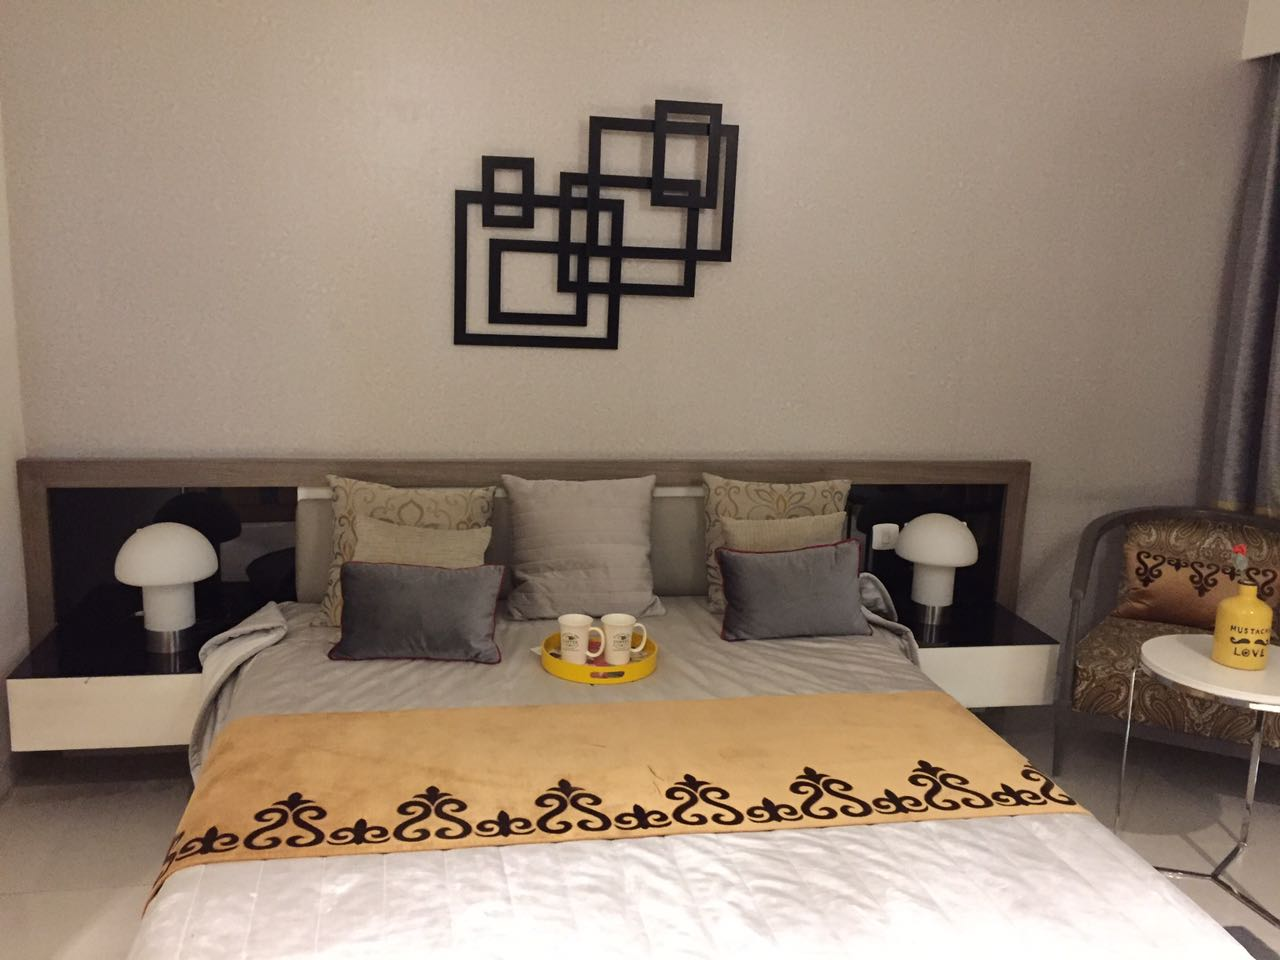 Abstract Squares by Preethi Hendricks Bedroom Contemporary | Interior Design Photos & Ideas